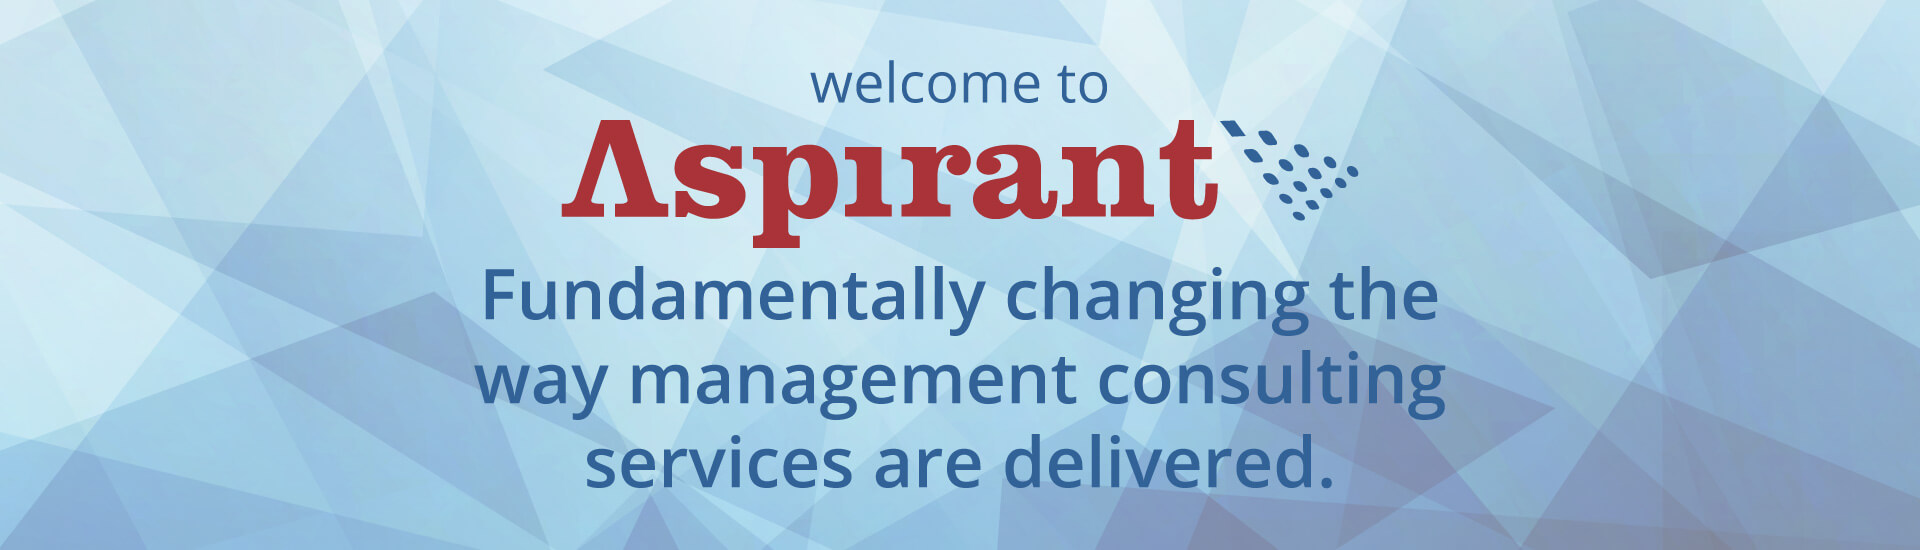 Welcome to Aspirant. Fundamentally changing the way managment consulting services are delivered.